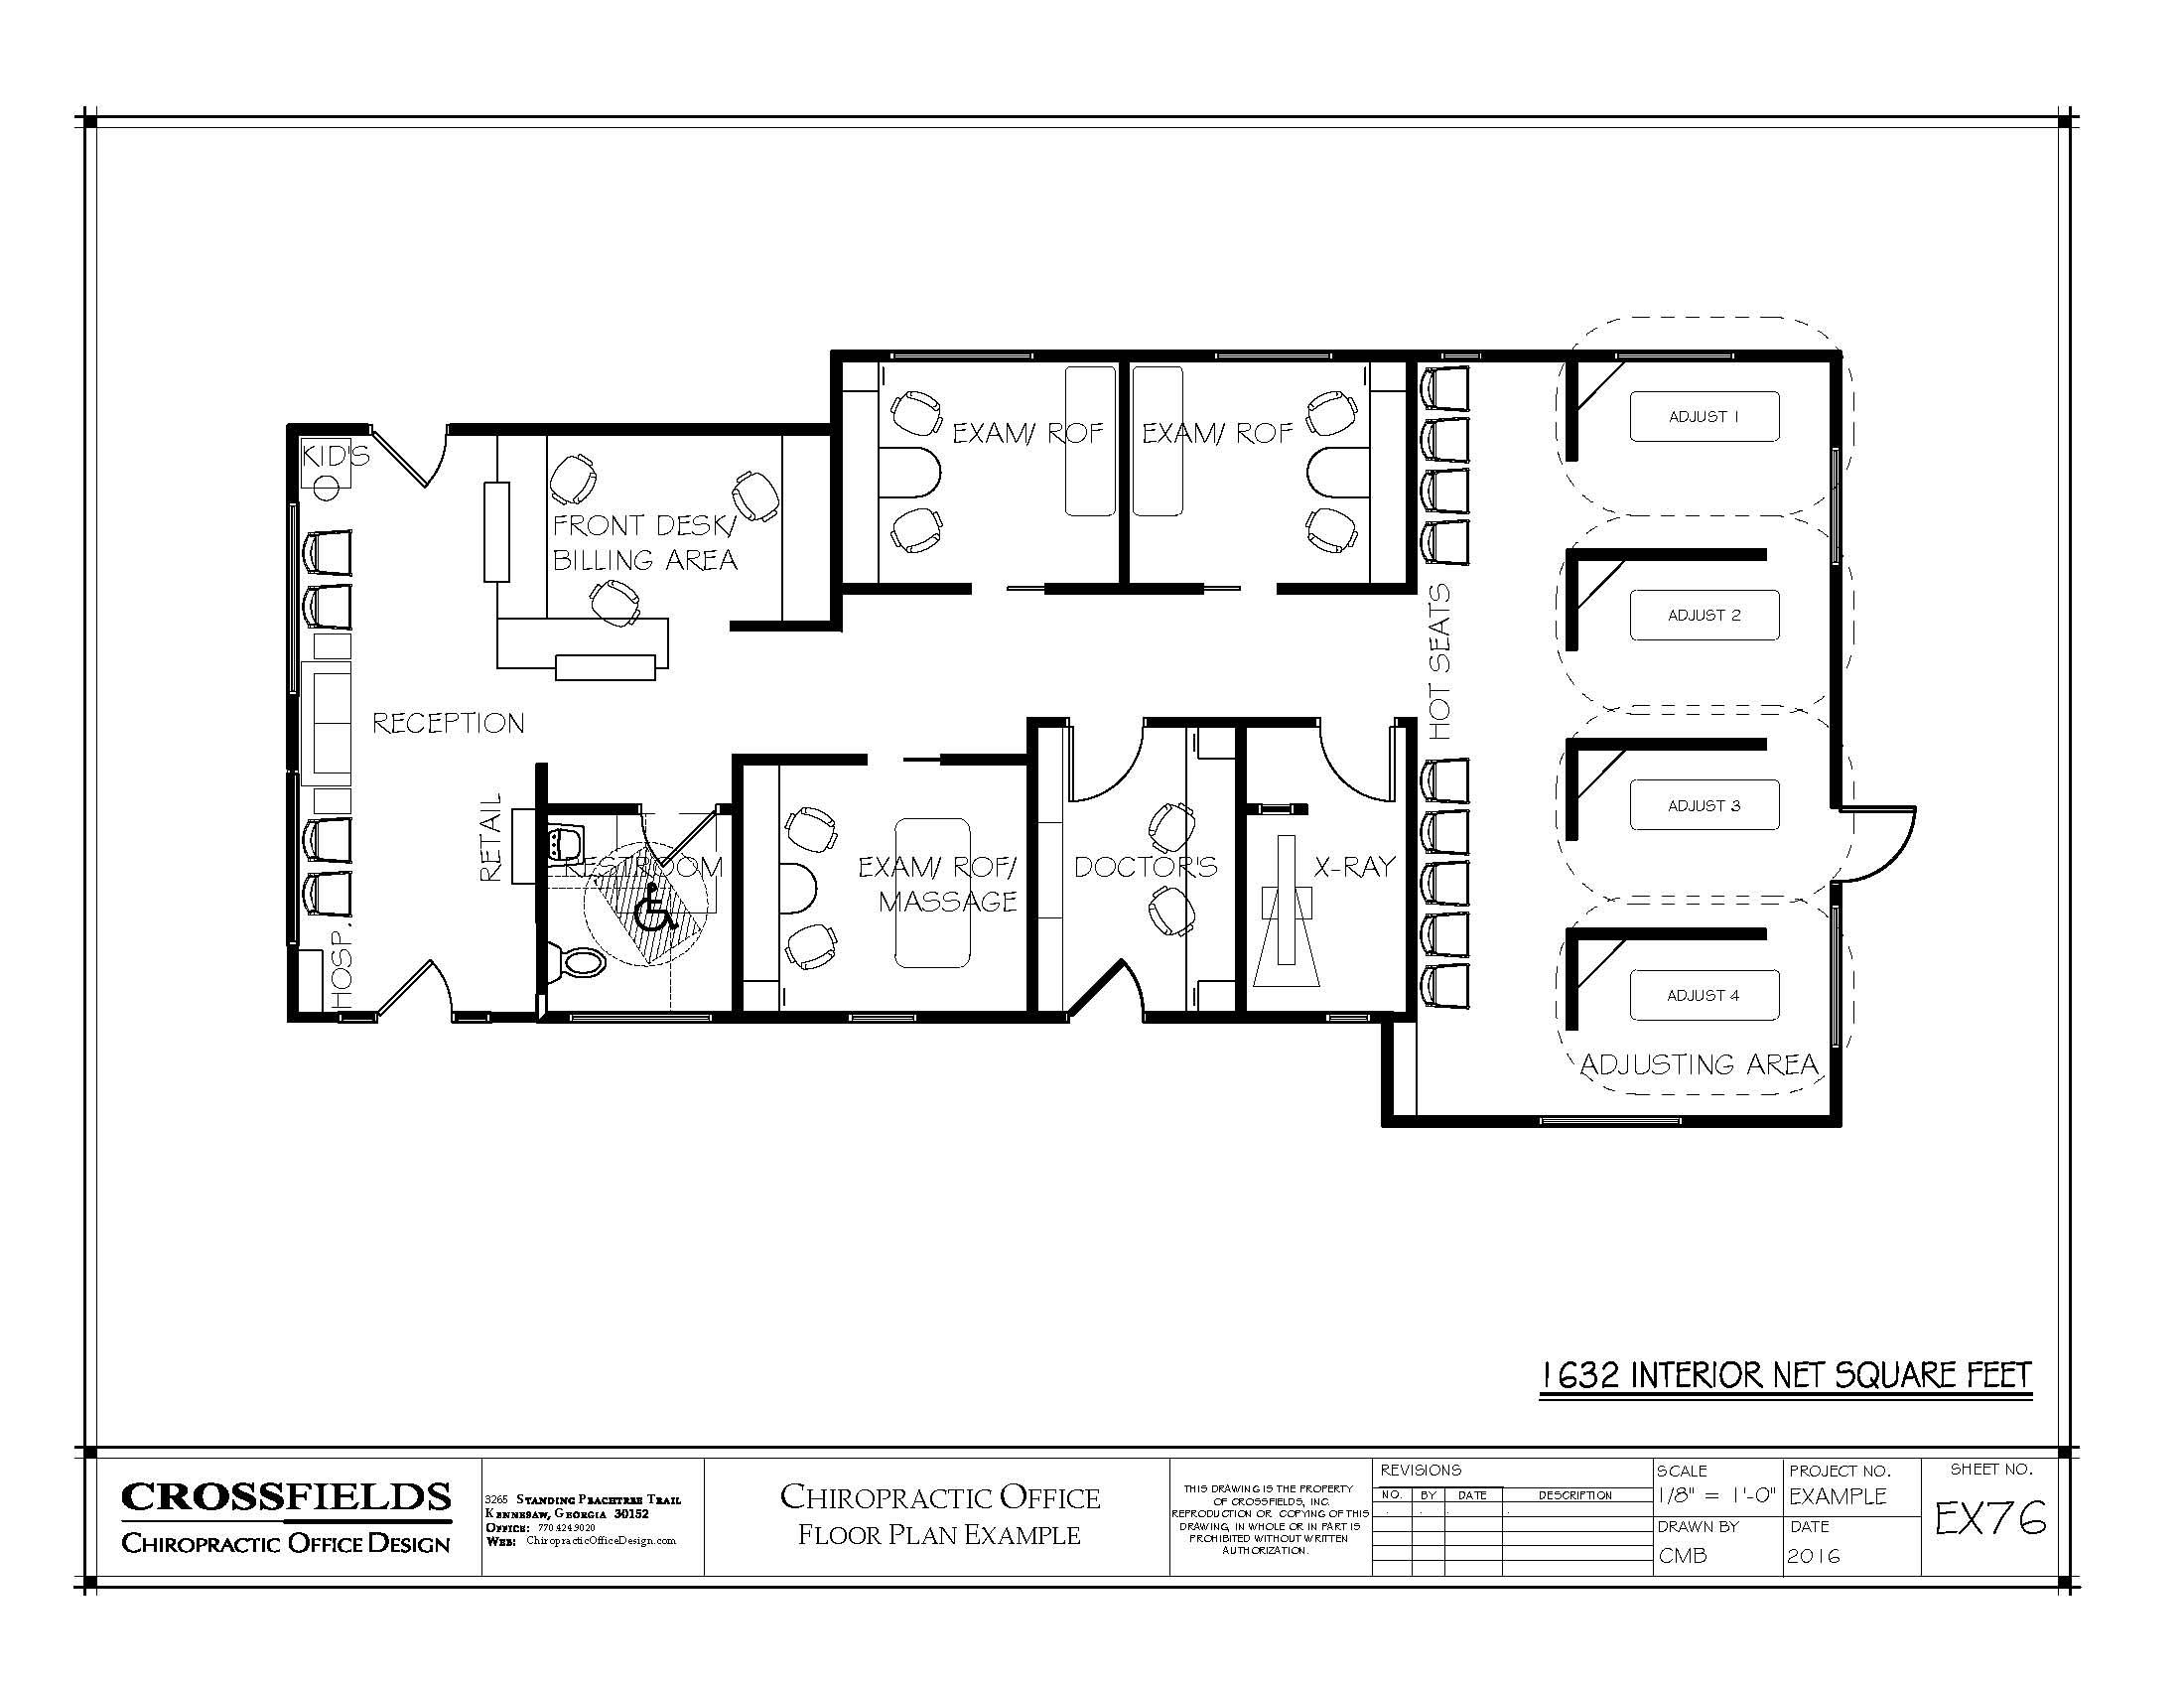 Example floor plan with semi open adjusting massage exam report of findings x